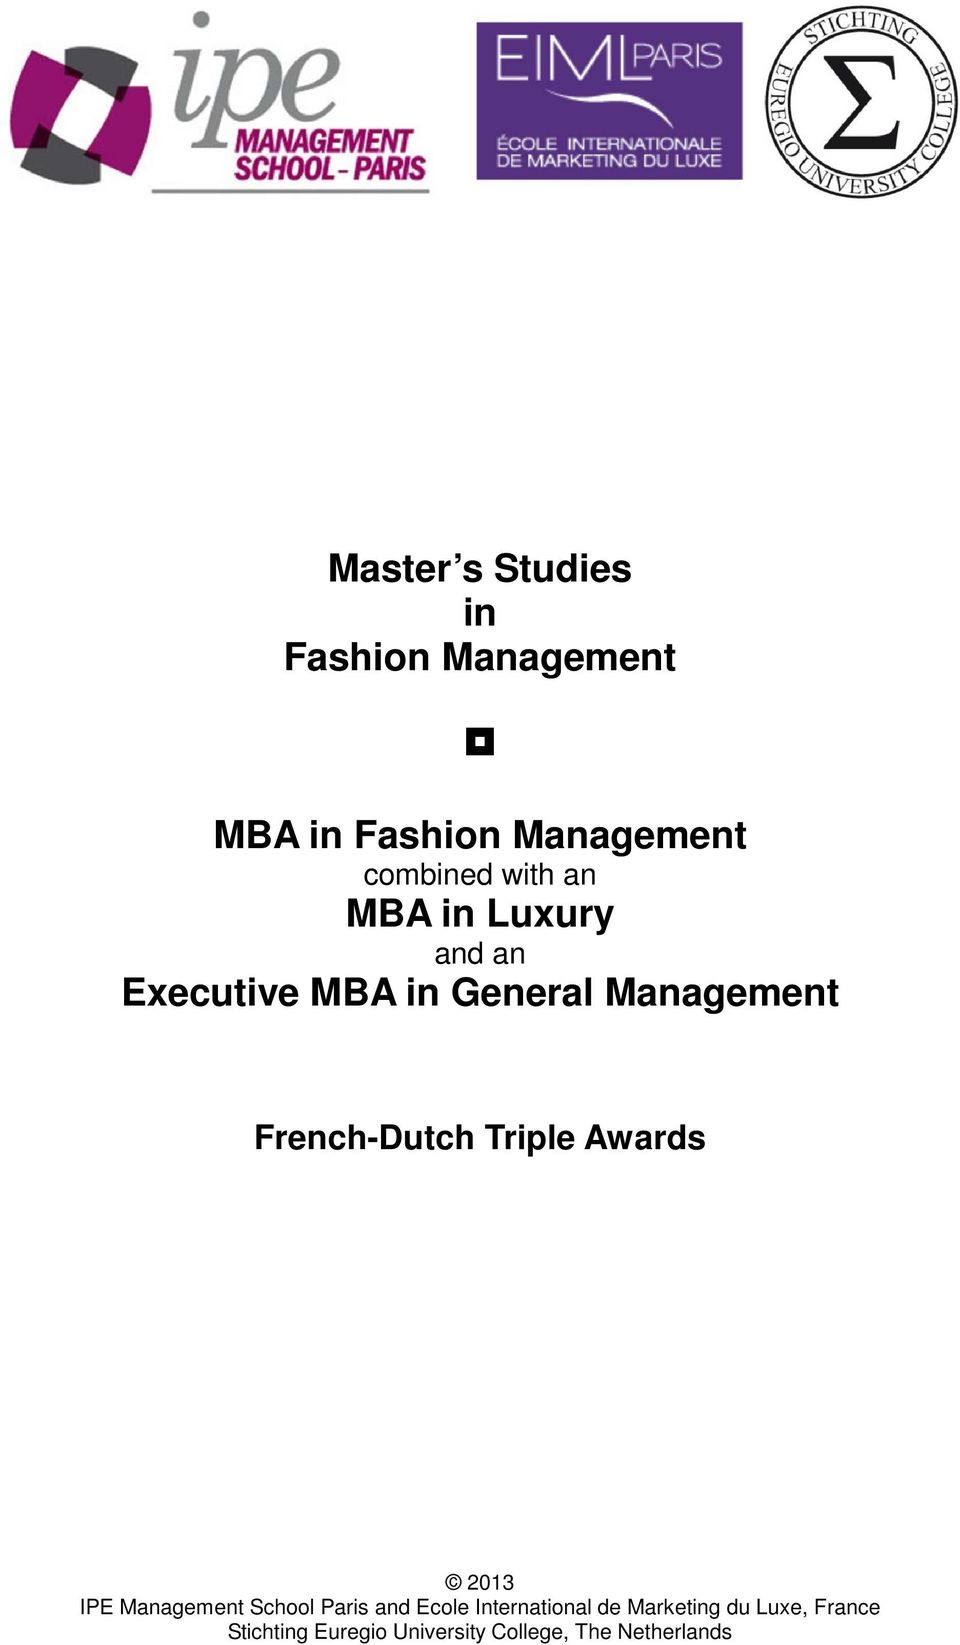 an MBA in Luxury and an Executive MBA in